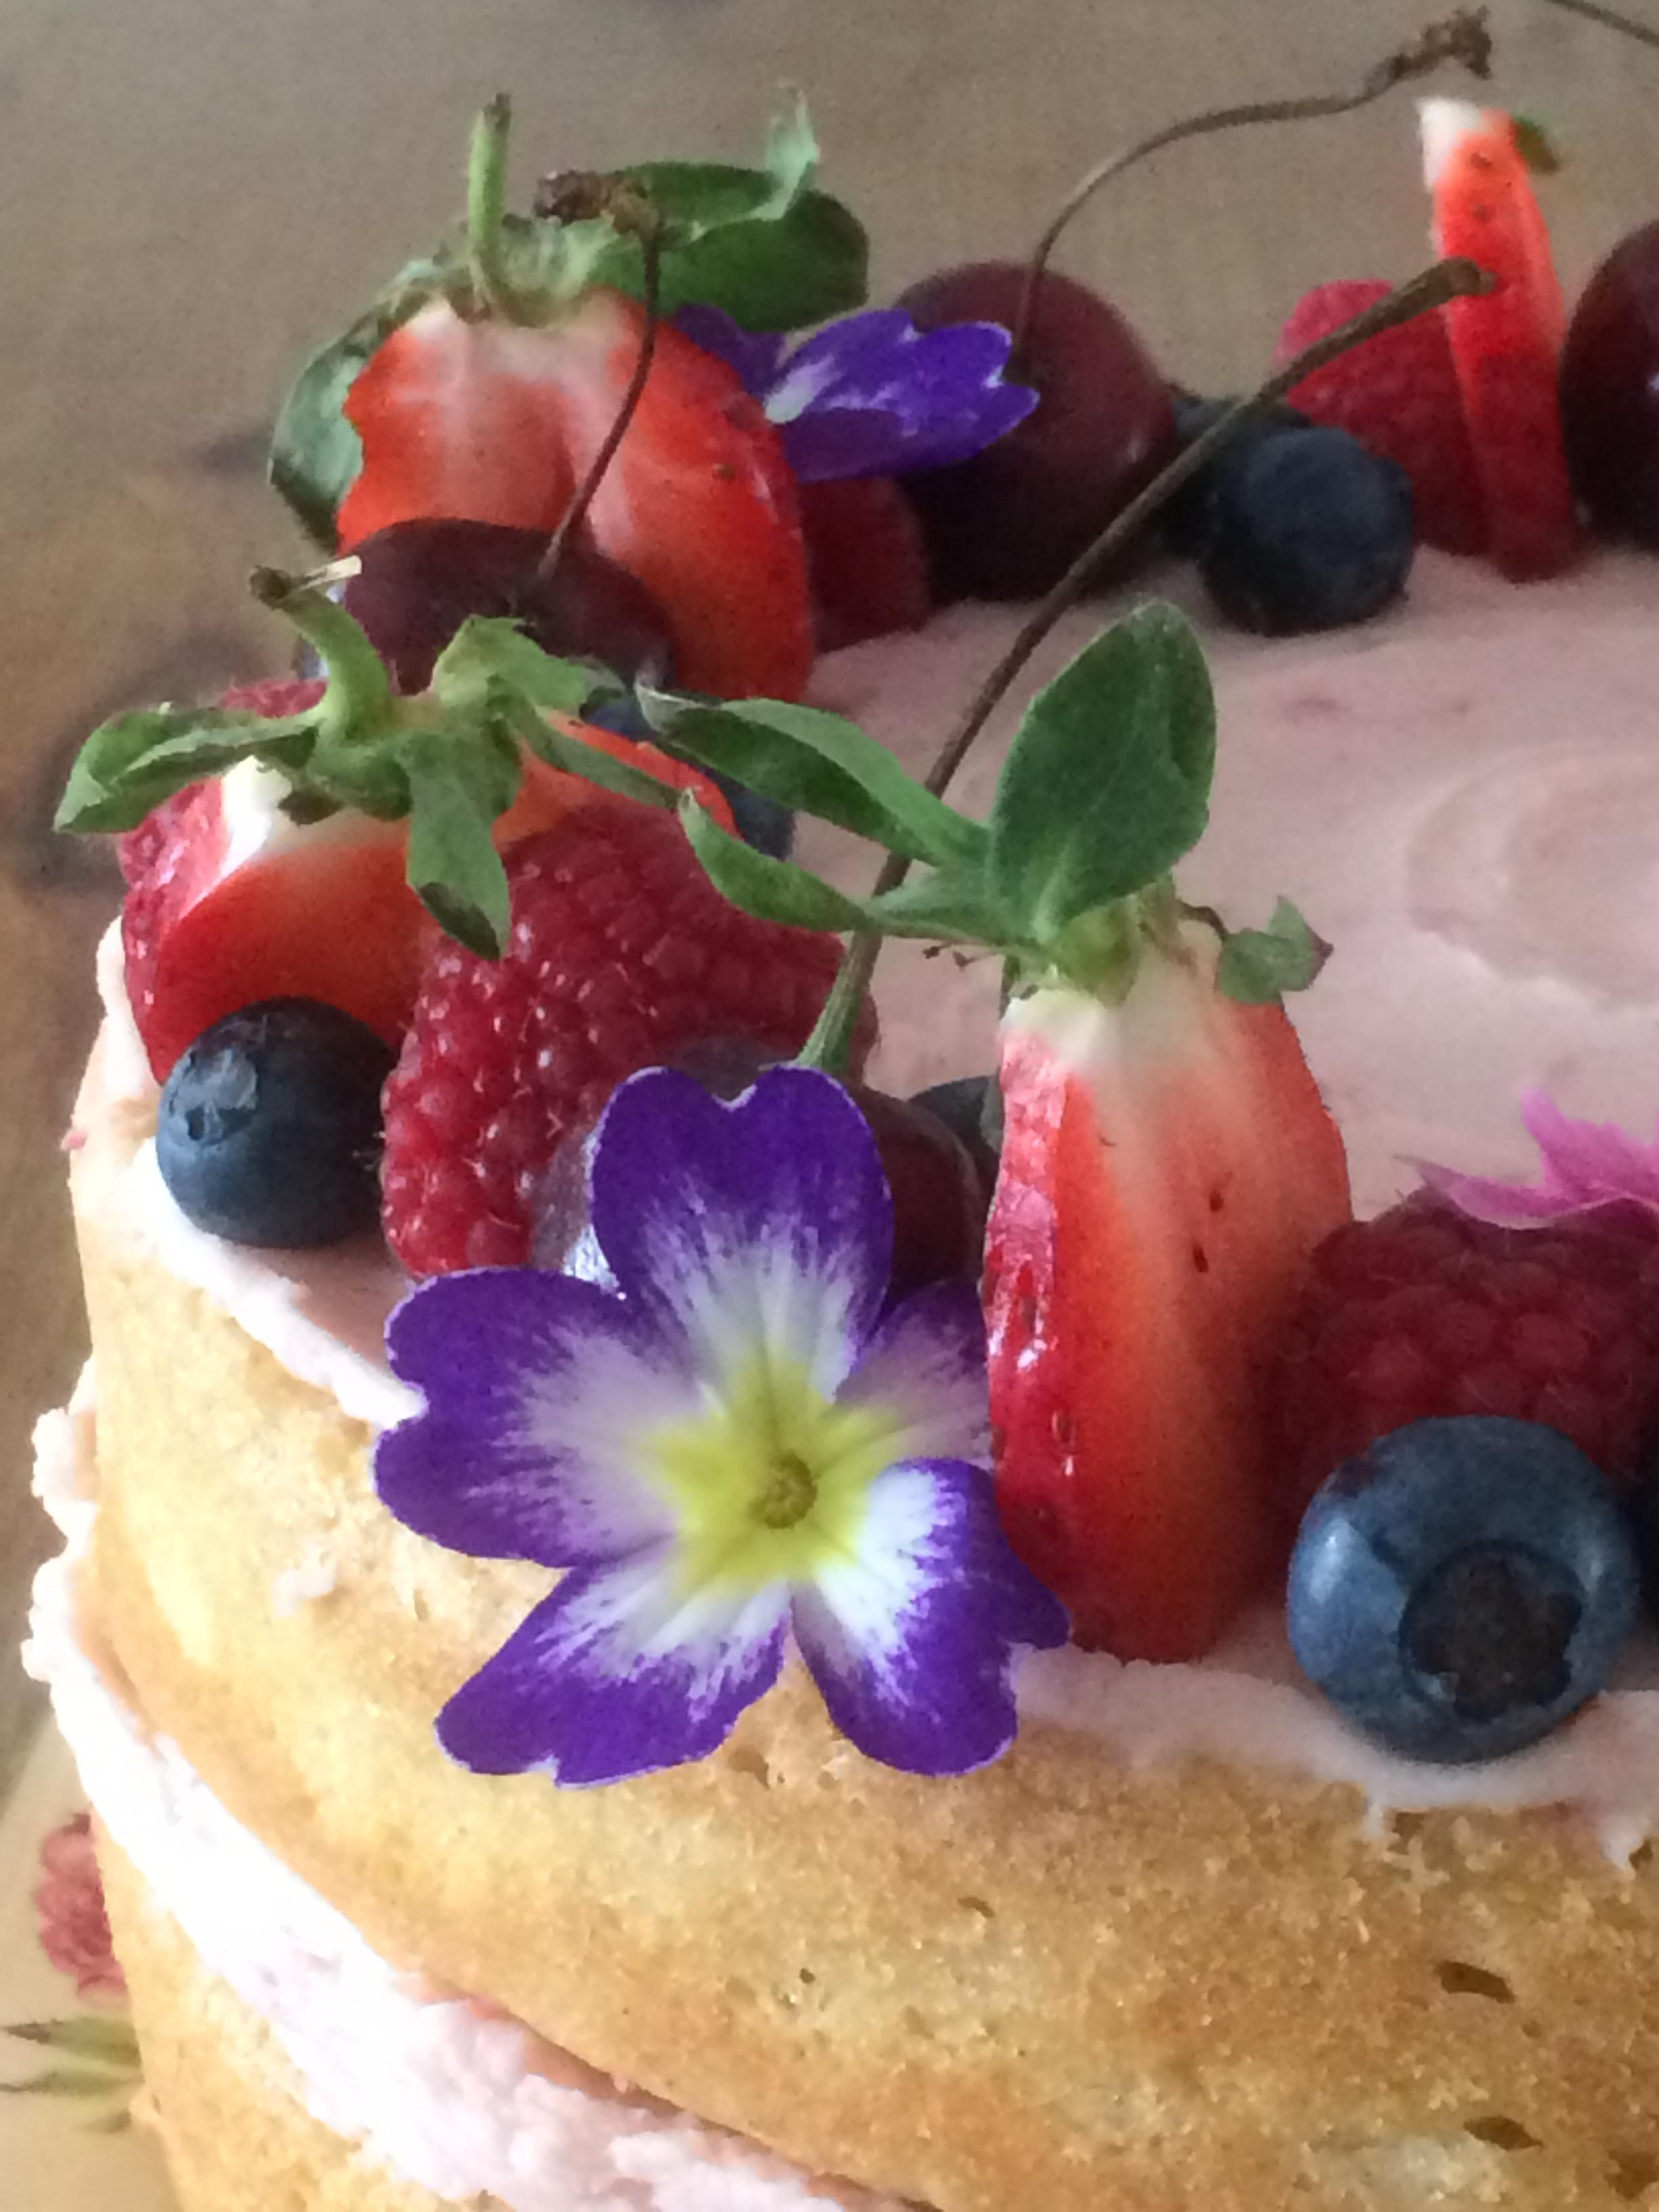 Sewing retreat, boho cakes, Devon, raspberry and whitechocolate cake